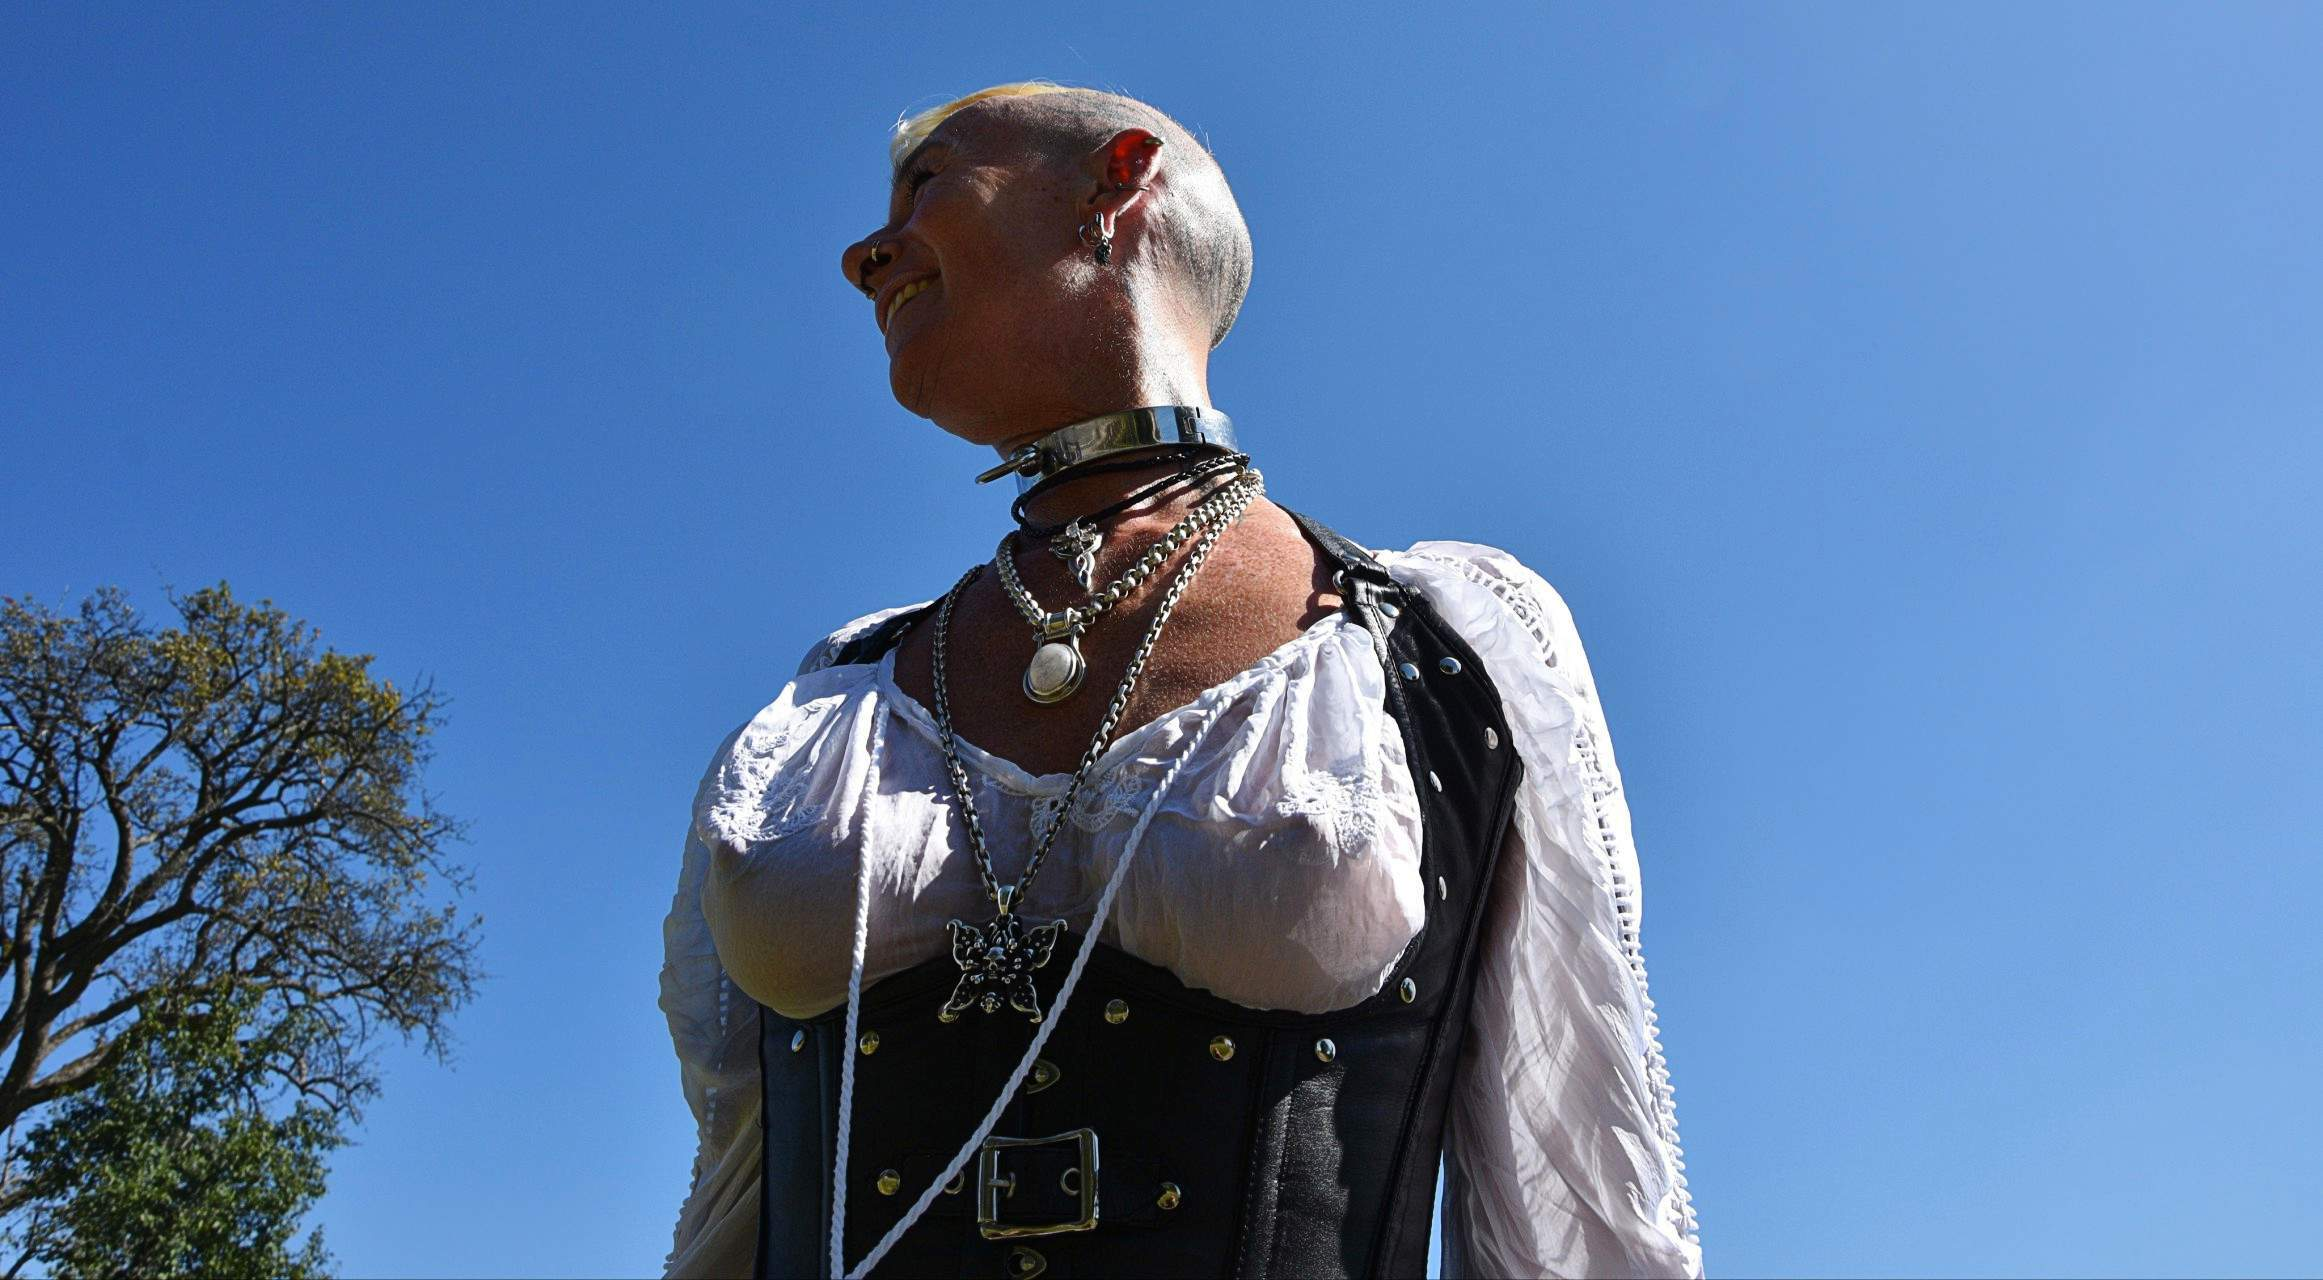 Lady-isabell666 lady